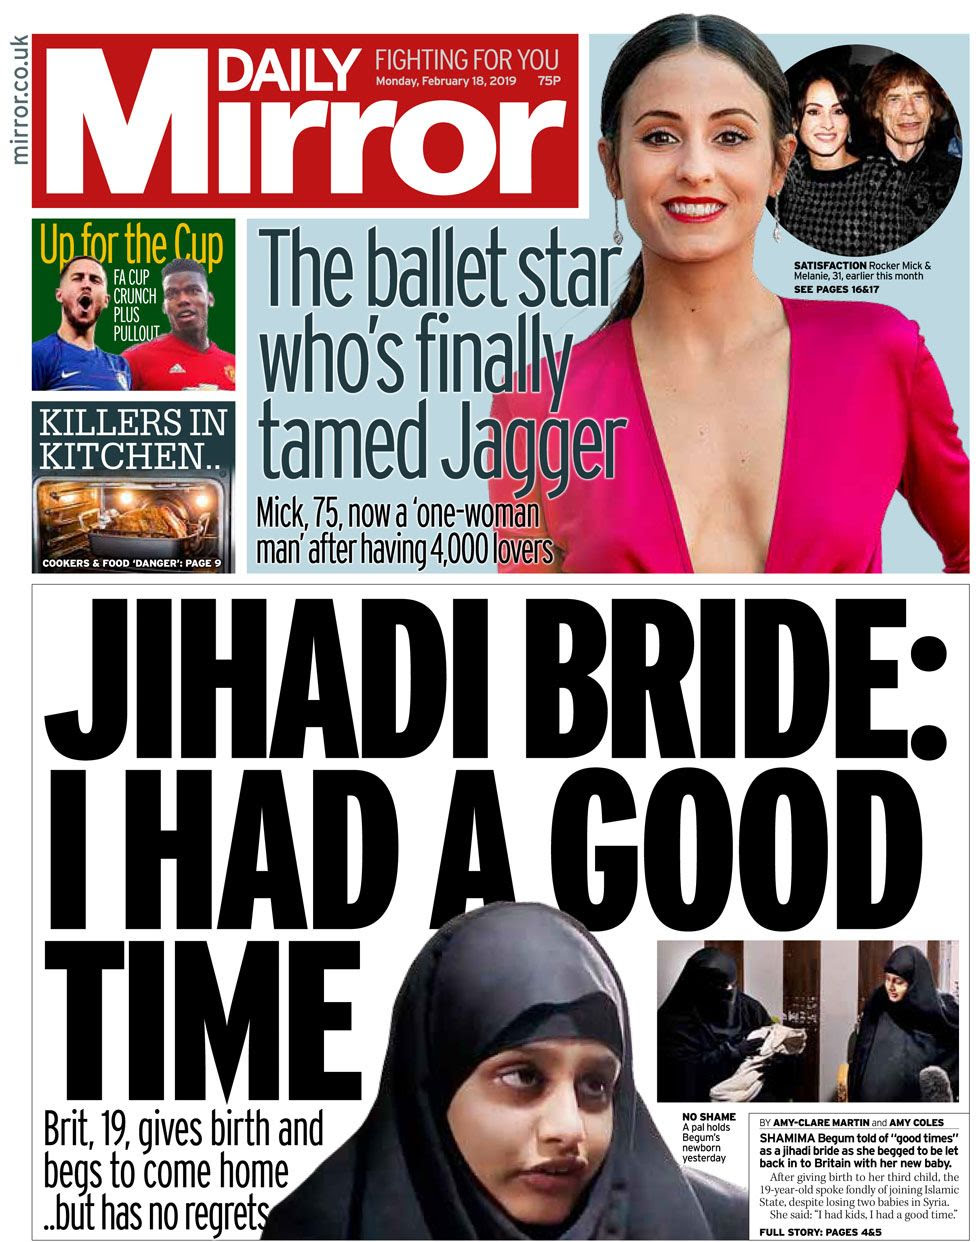 The Daily Mirror front page on 18 February 2019